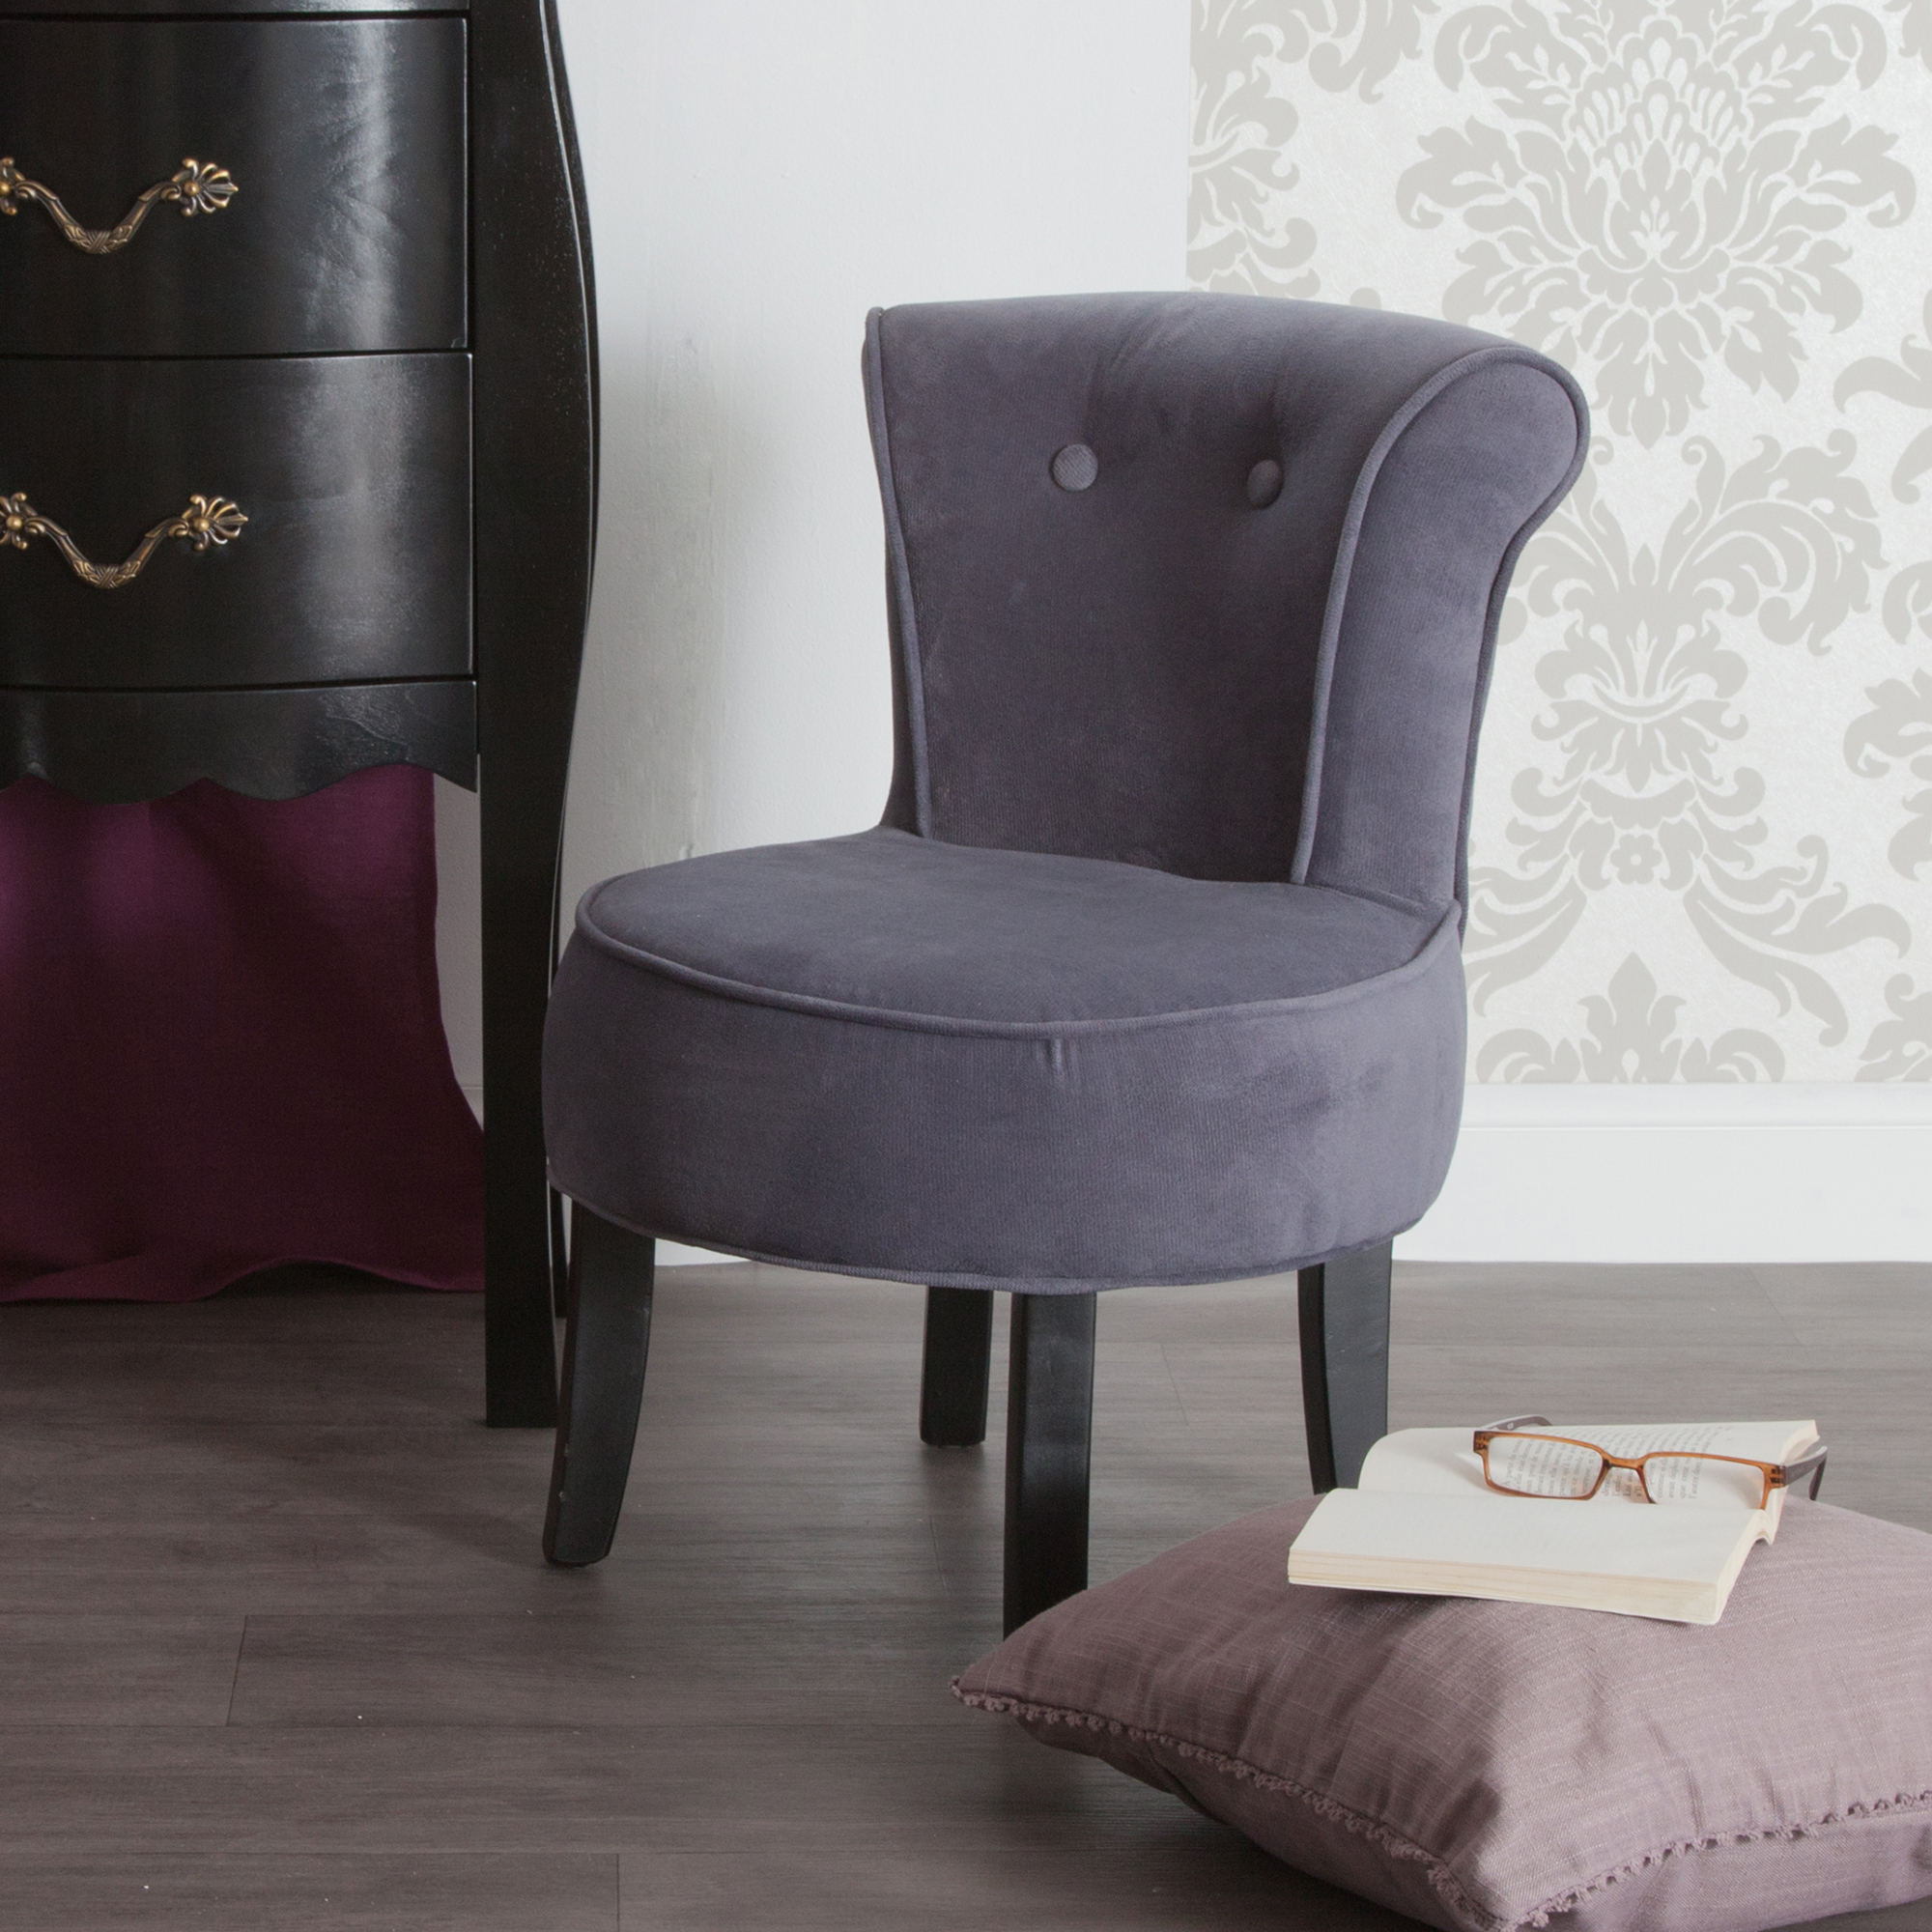 fauteuil crapaud noir pas cher id es de d coration int rieure french decor. Black Bedroom Furniture Sets. Home Design Ideas